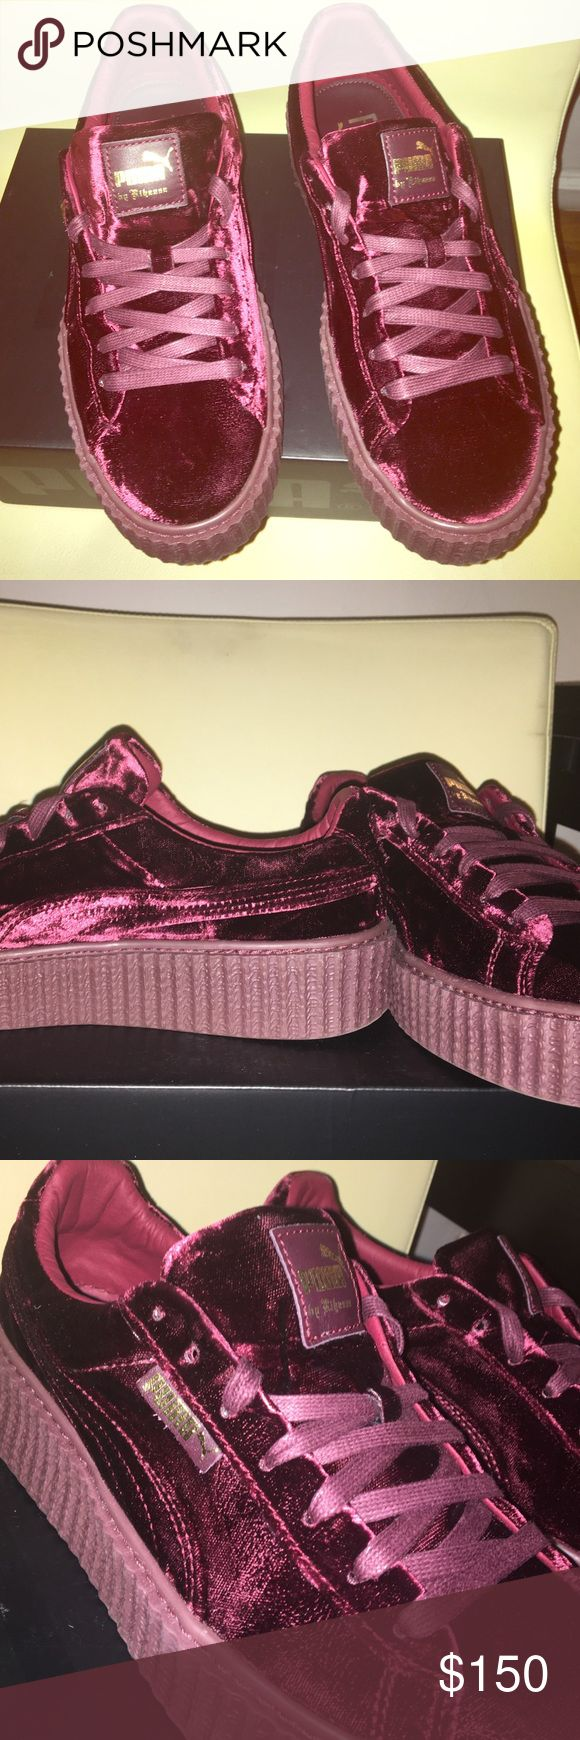 Brand New Puma Fenty Burgundy Velvet Creepers Brand New! Purchased, Tried on, but never worn out. Includes the original box and velvet bag. Currently sold out everywhere. Puma Shoes Sneakers